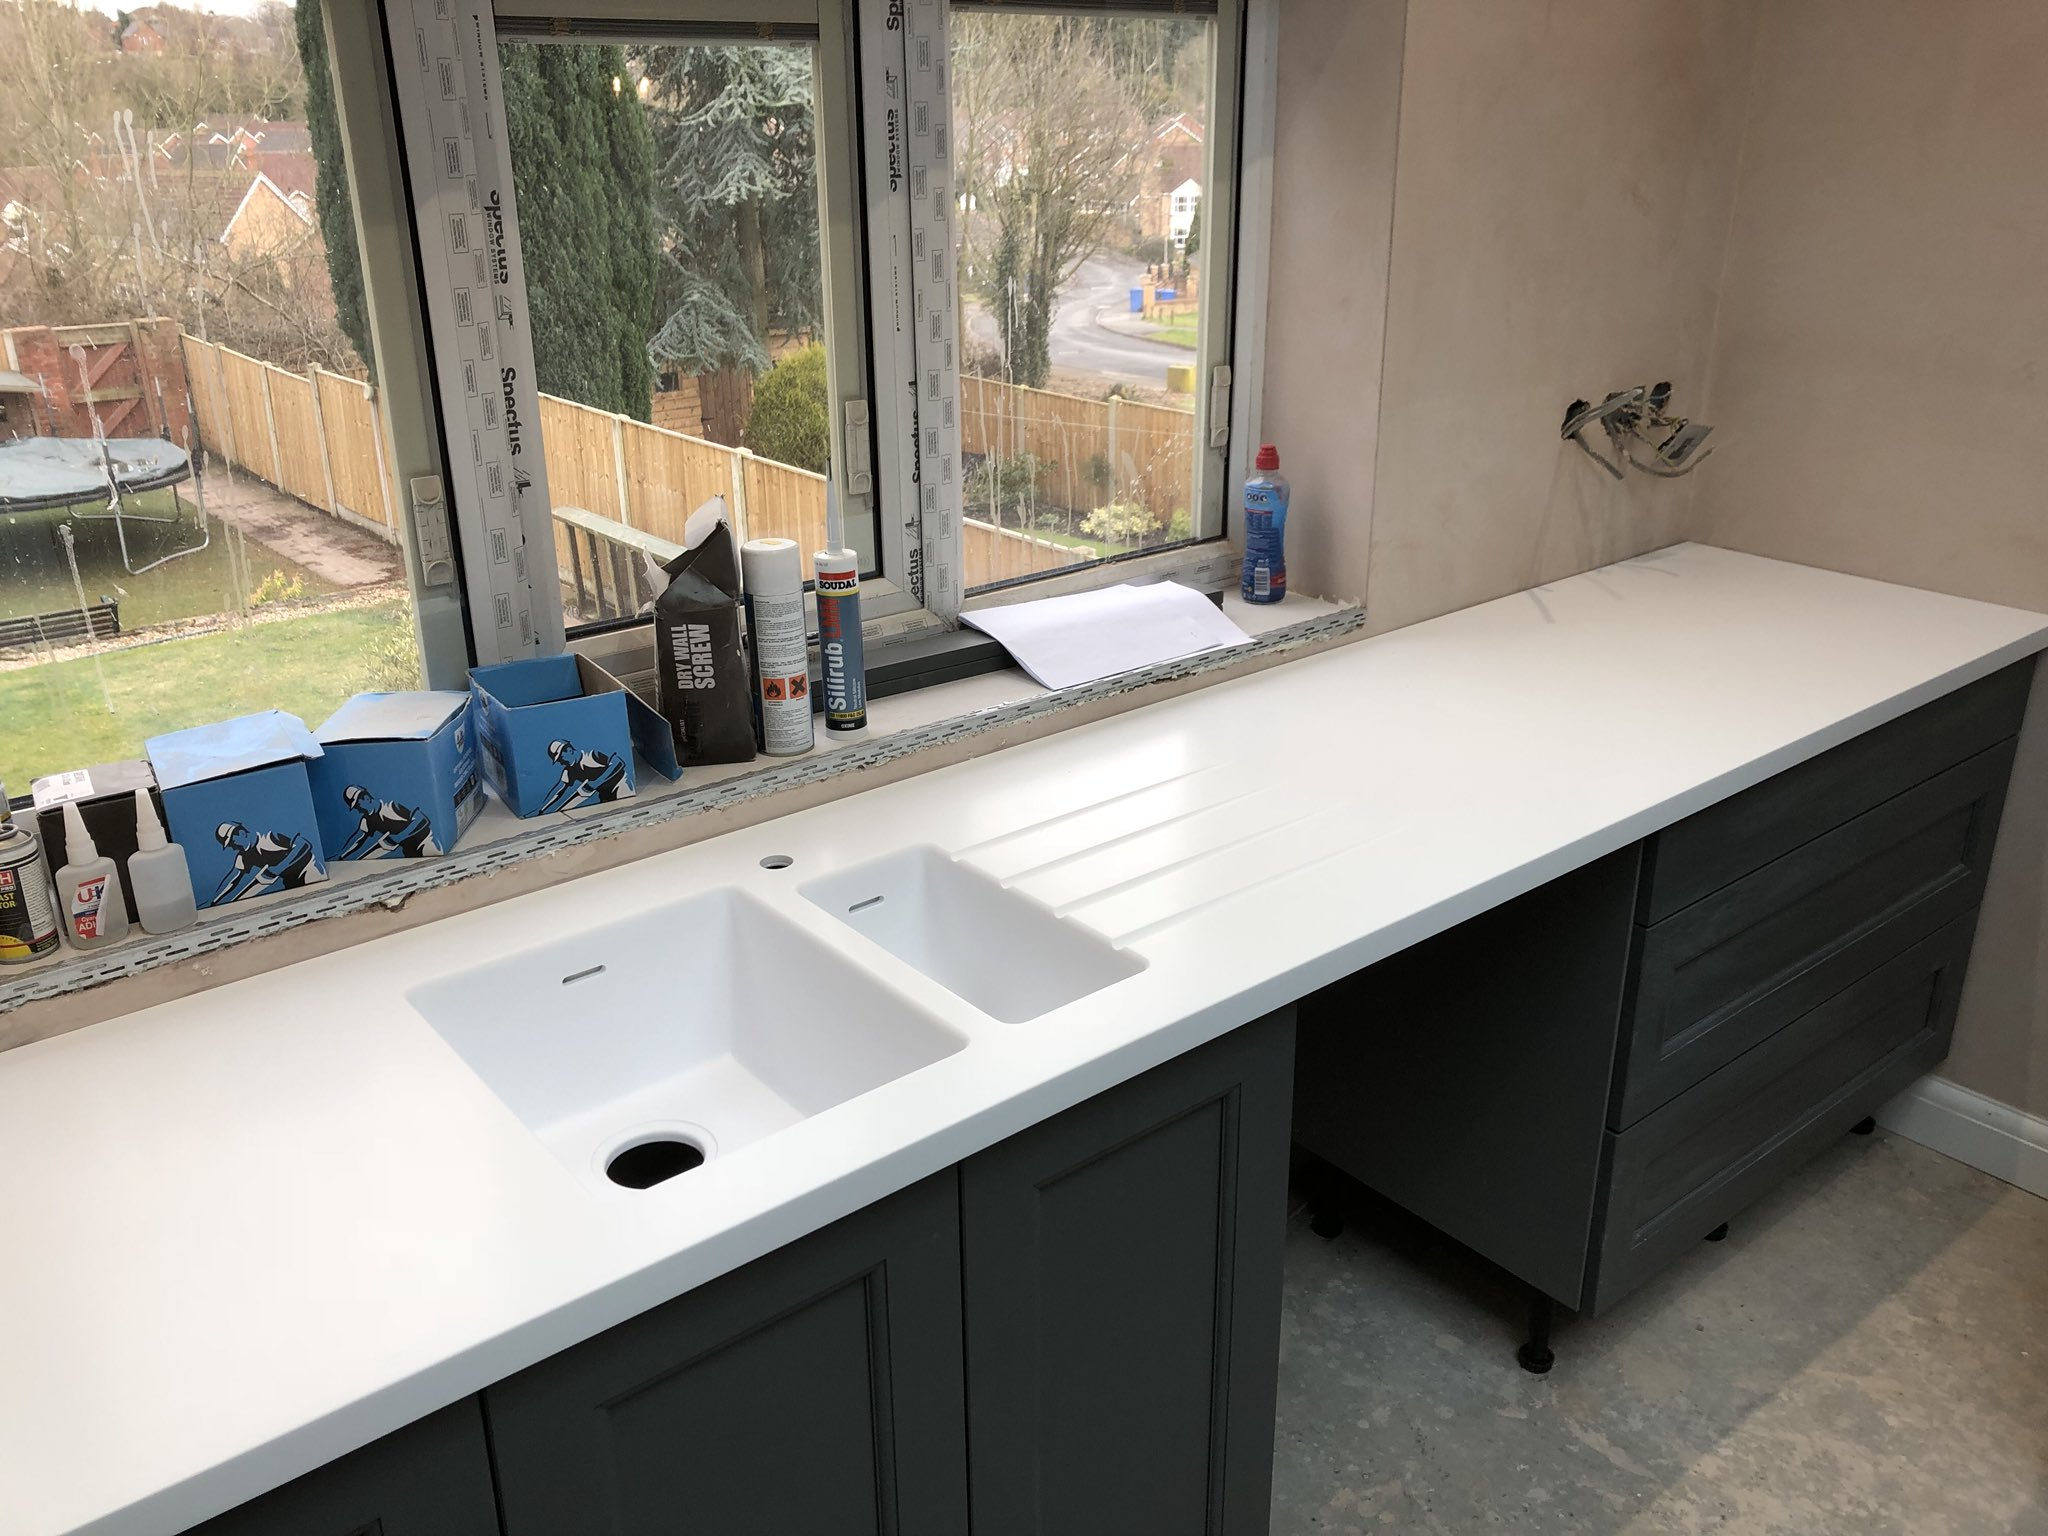 Picture of: Sheff Solid Surfaces Pa Twitter Luxurious Tristone Whale White Worksurfaces With Integrated Corian Sinks Expertly Installed This Week By Our Team In Nottinghamshire Madeinsheffield Tristoneuk Solidsurface Sheffieldissuper Https T Co